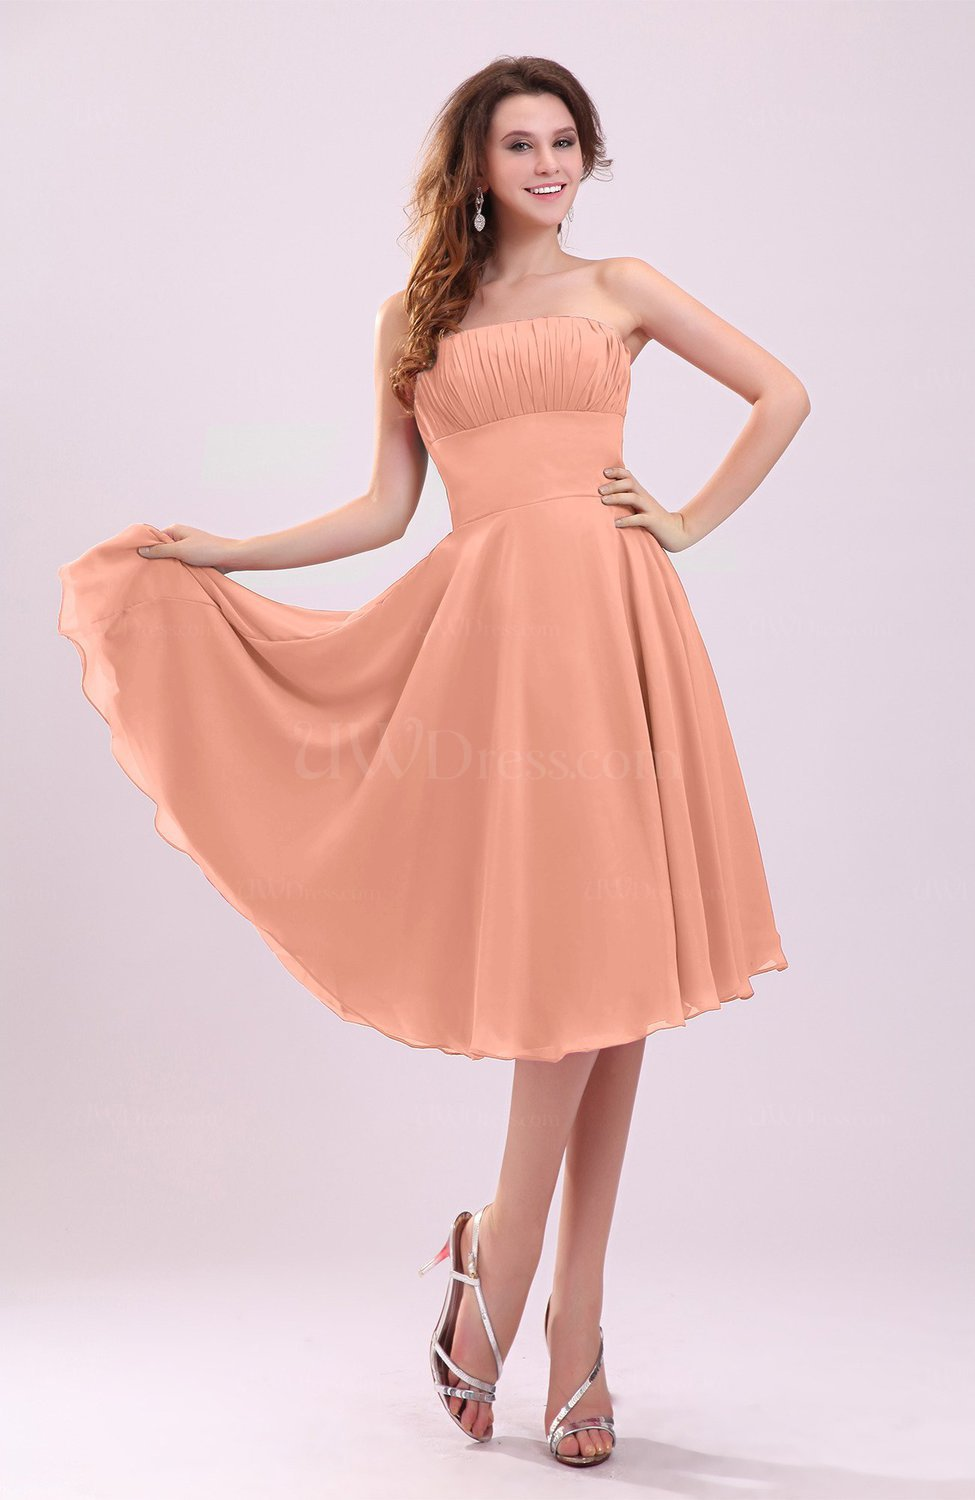 501a0c44737 Salmon Simple A-line Sleeveless Backless Pleated Wedding Guest ...